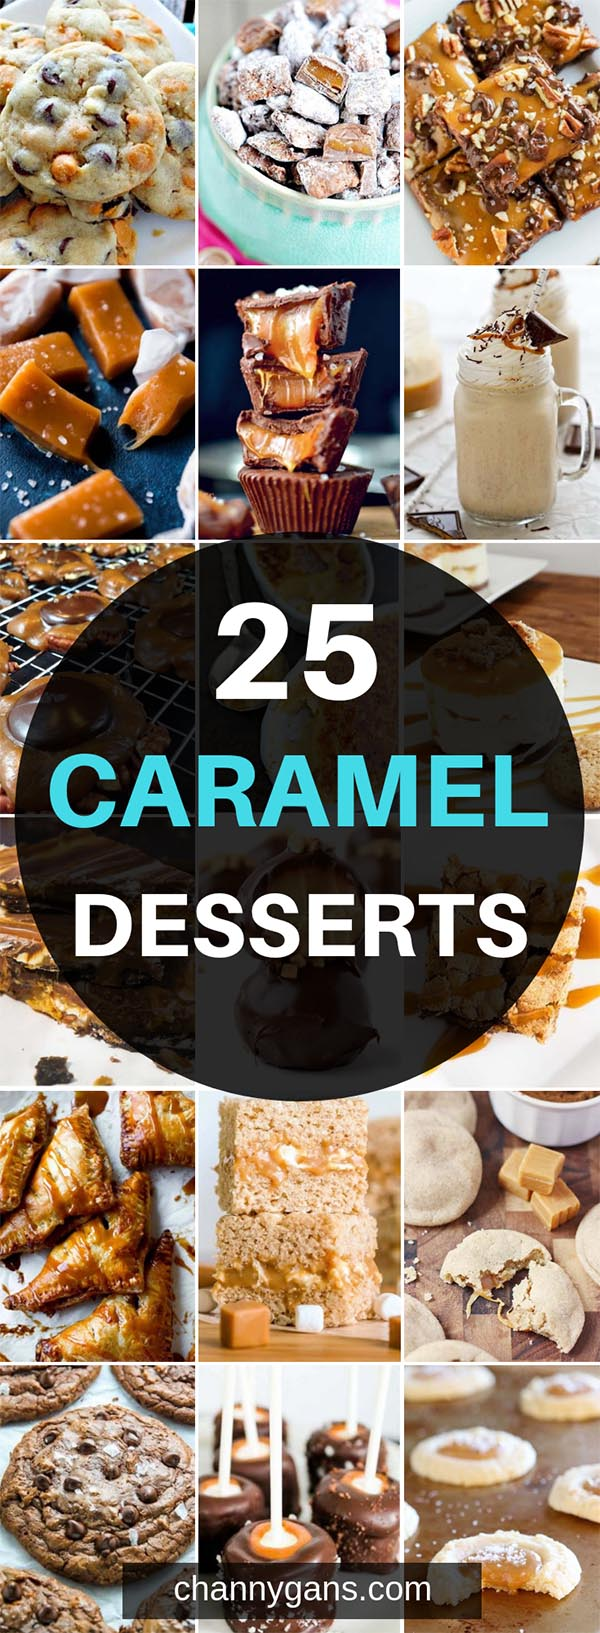 These caramel desserts are chewy, heavenly and full of flavor! Perfect for an after dinner treat!